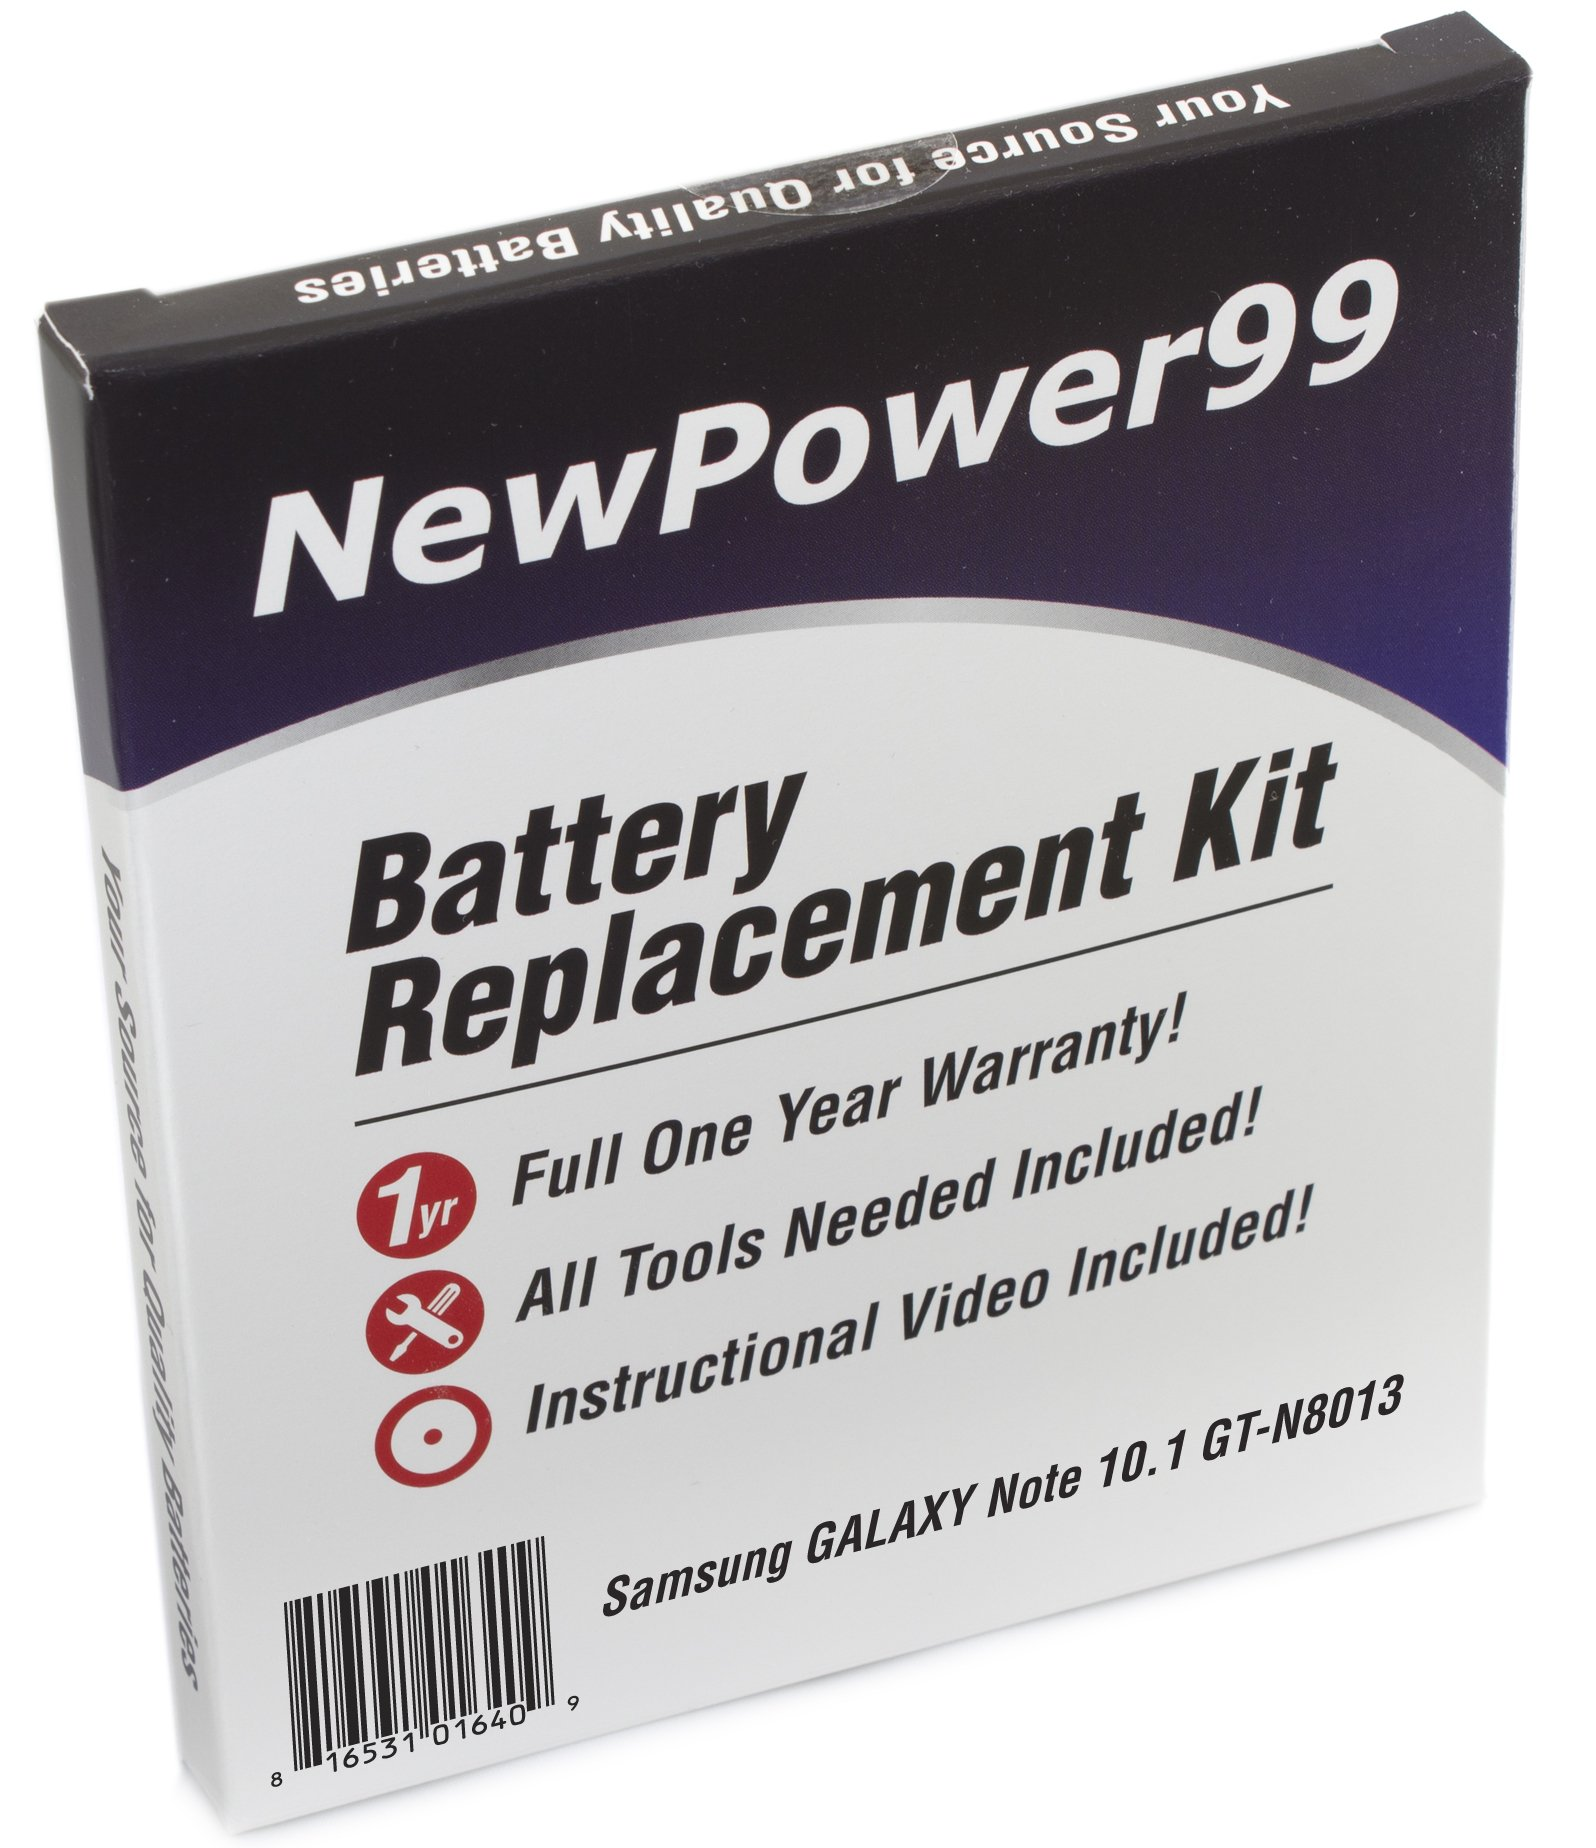 NewPower99 Samsung Galaxy Note 10.1 GT-N8013 Battery Replacement Kit with Video Installation DVD, Installation Tools, and Extended Life Battery